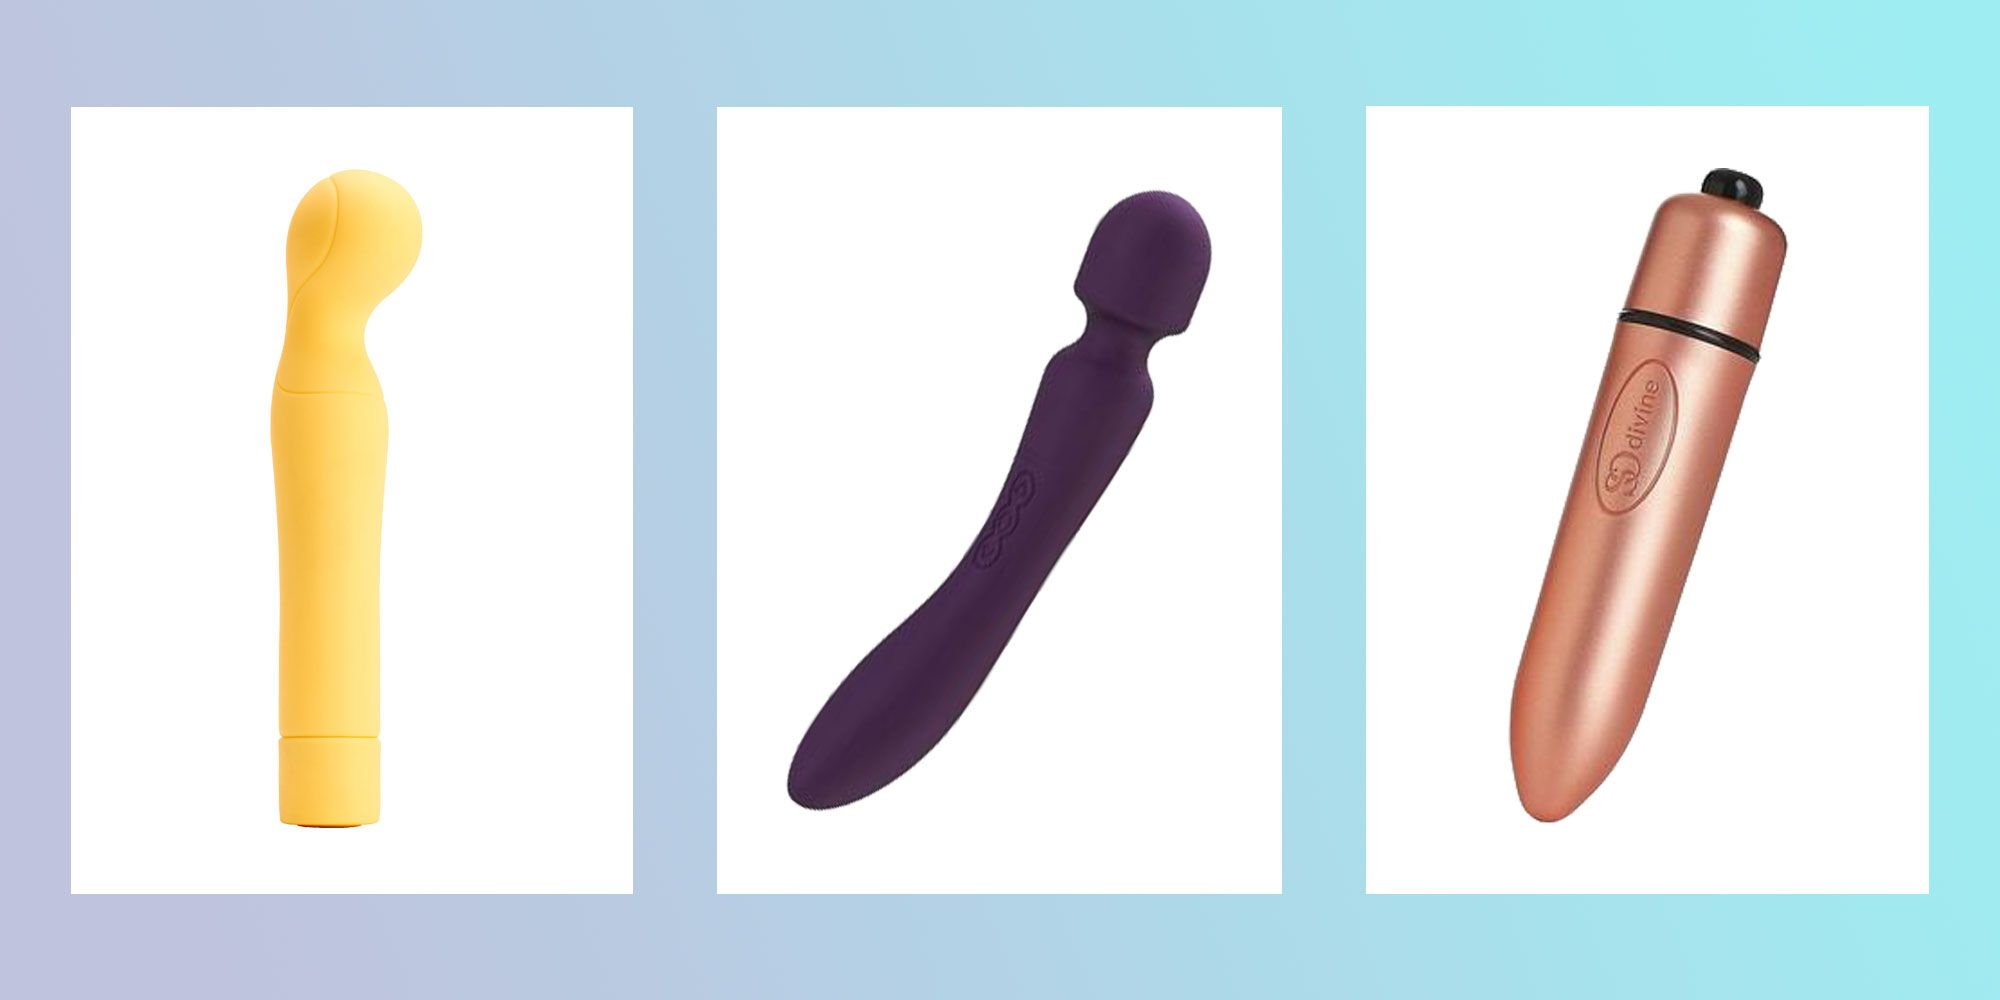 Boots now sells loads of new sex toys, here are the best